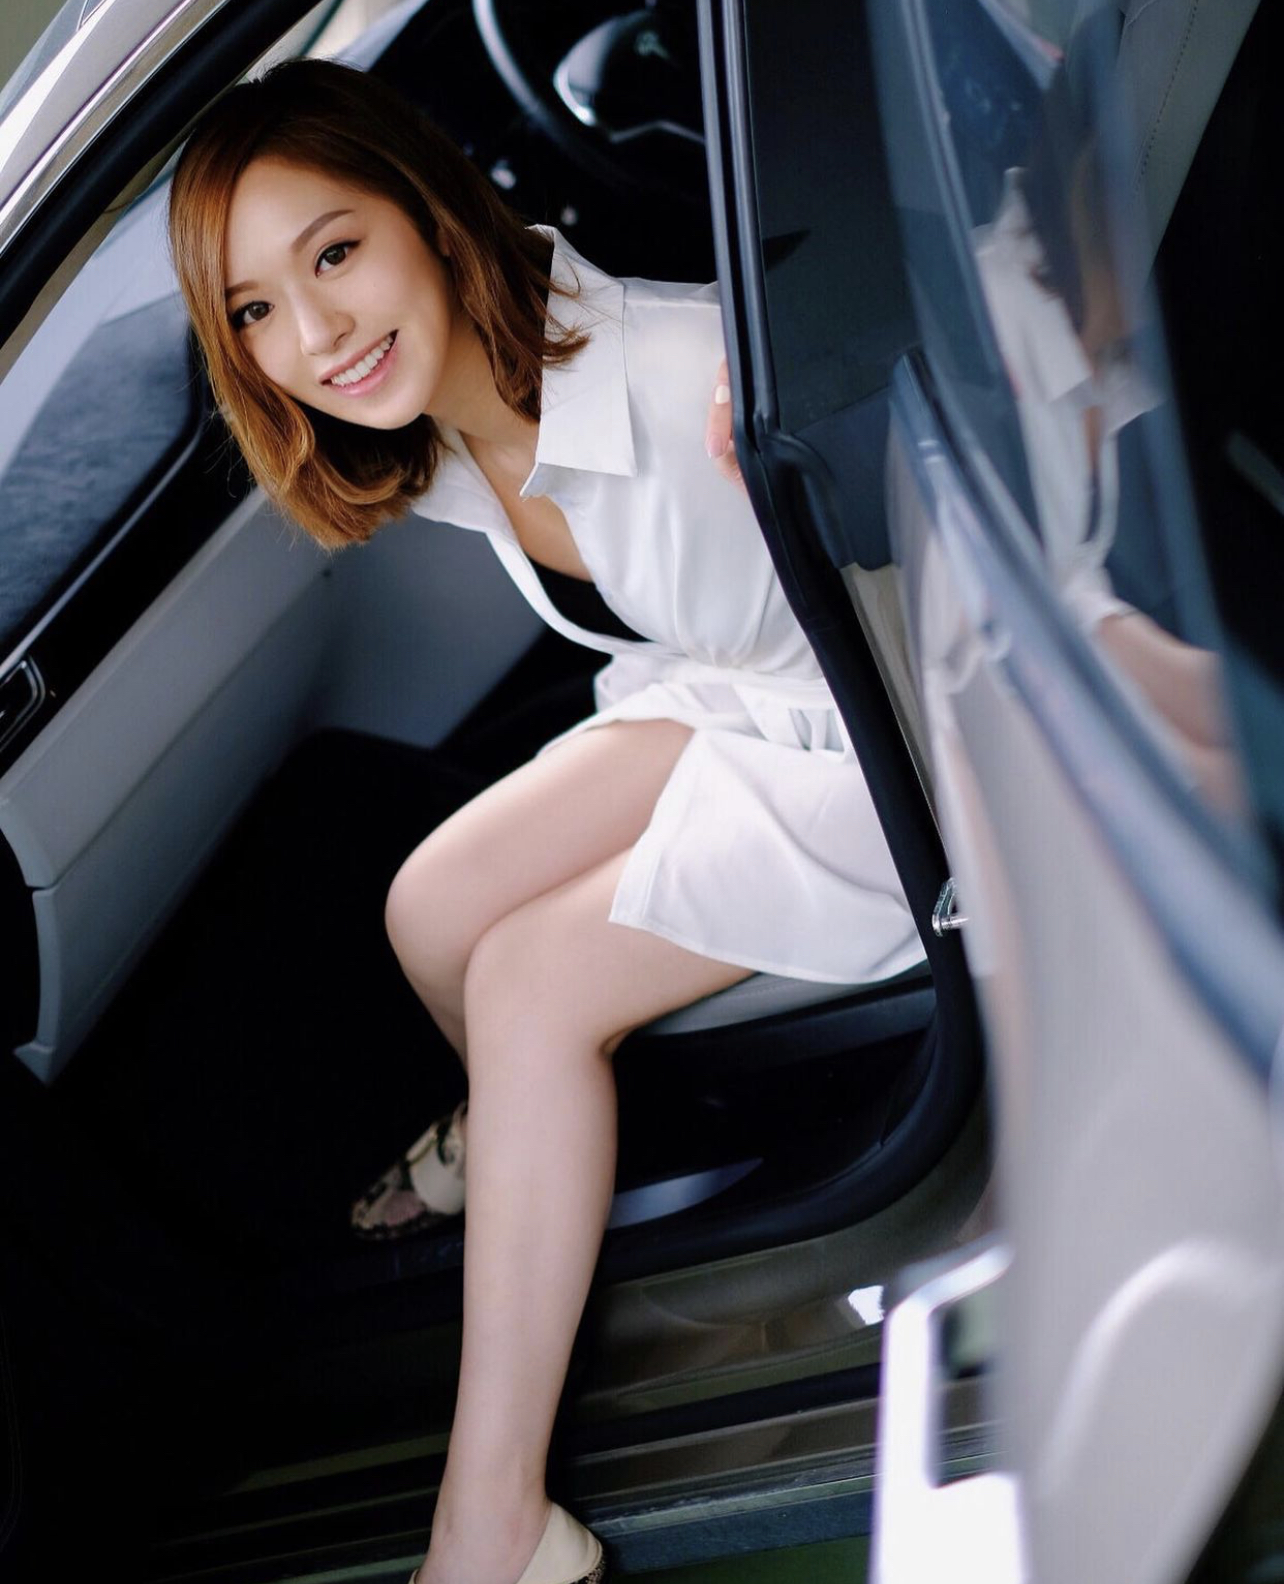 Crystal Fung Crashes S$103K Tesla Into Bentley; Settles With Driver By Taking Photo With Him